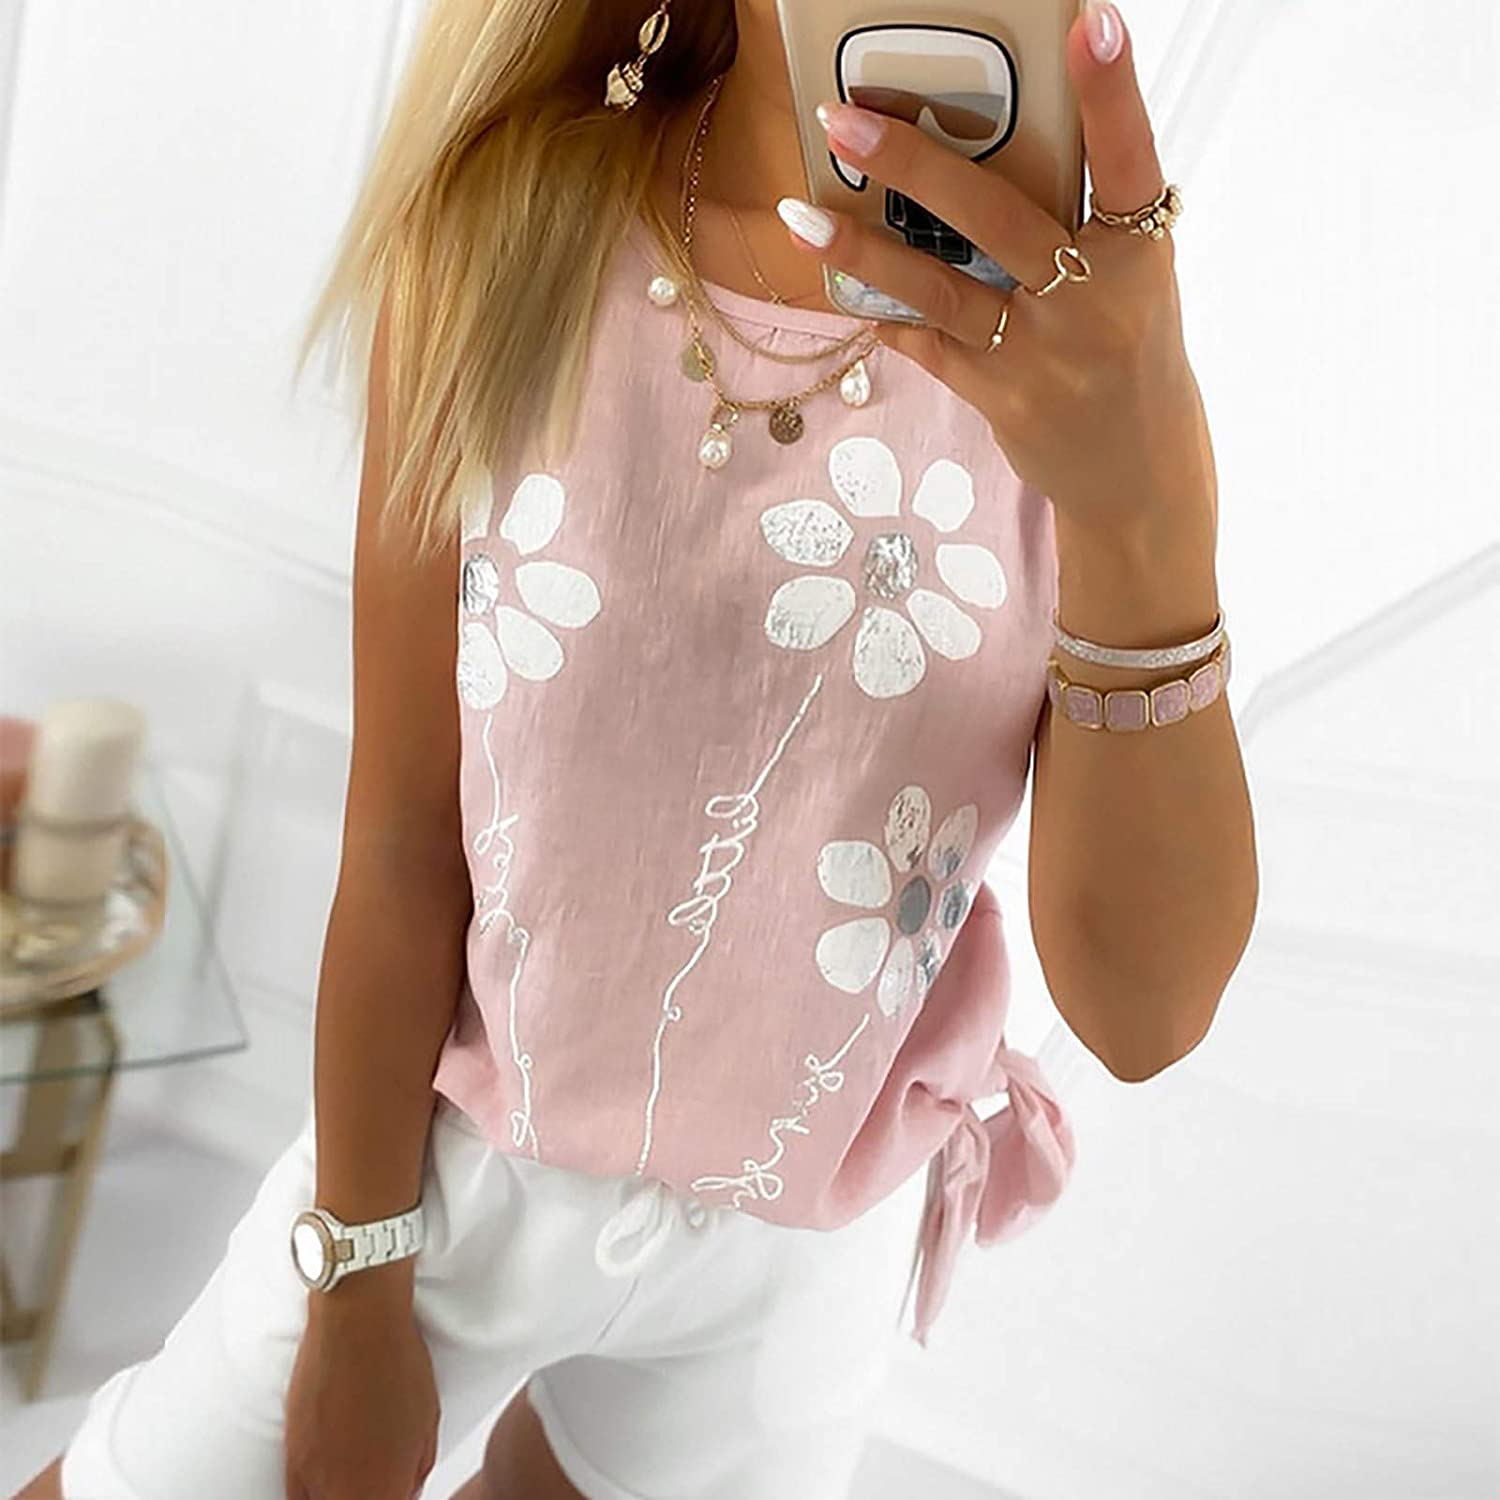 SUNYUAN Womens Sleeveless Vest Cute Flower Graphic Blouse Round Neck Tie Knot Loose Summer Basic Comfy Casual Tunic Tops